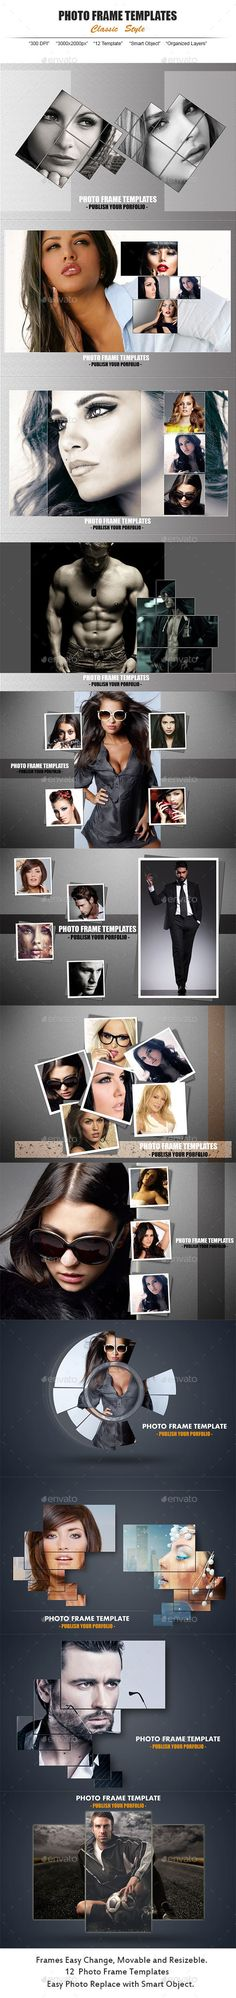 12 Photo Frame Style #photography Download: http://graphicriver.net/item/12-photo-frame-style-/13524721?ref=ksioks